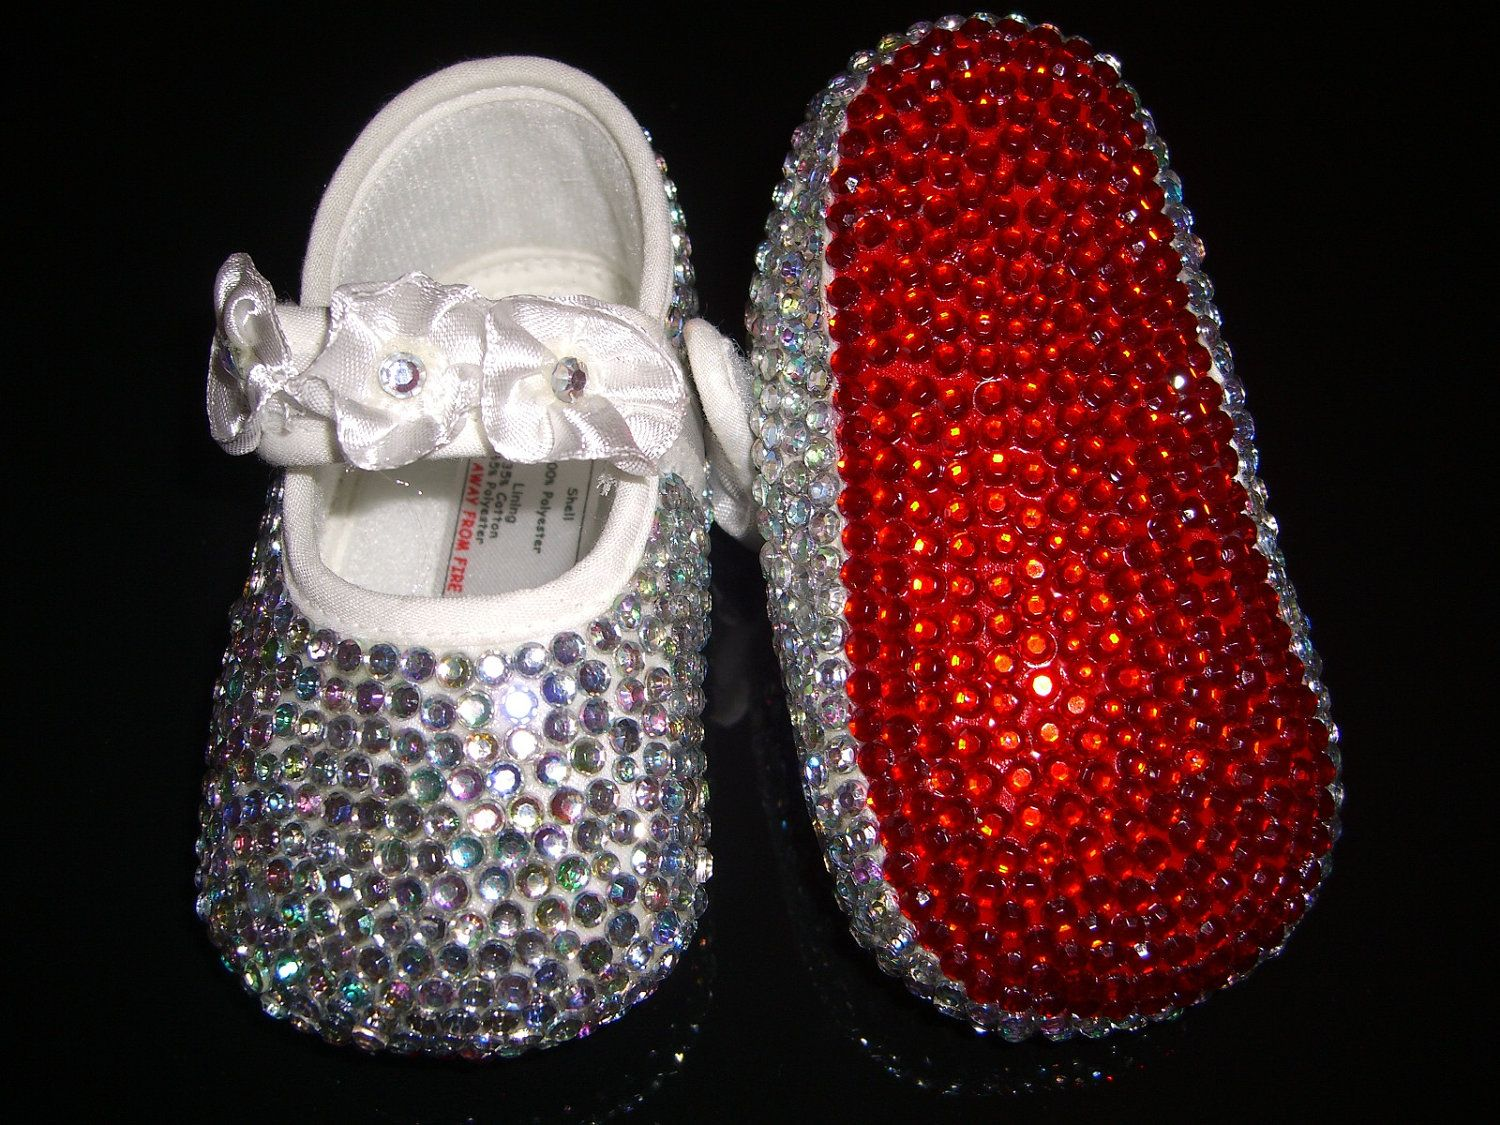 d0188a787d2 Louboutin Baby Shoes   are you kidding me!!! ❤❤❤❤❤❤❤